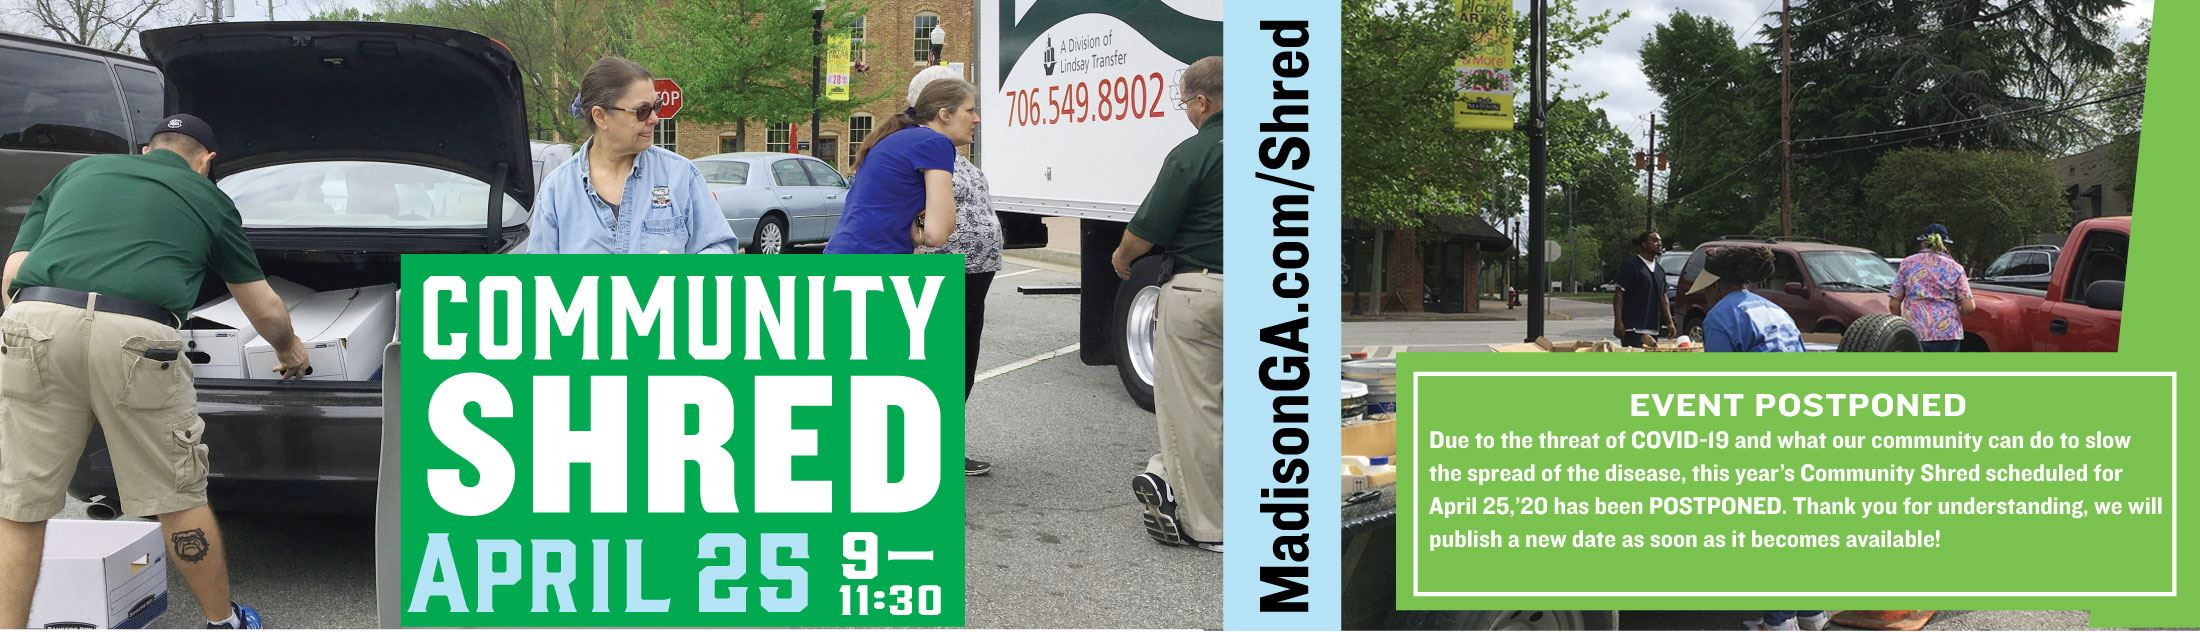 Community Shred Postponed